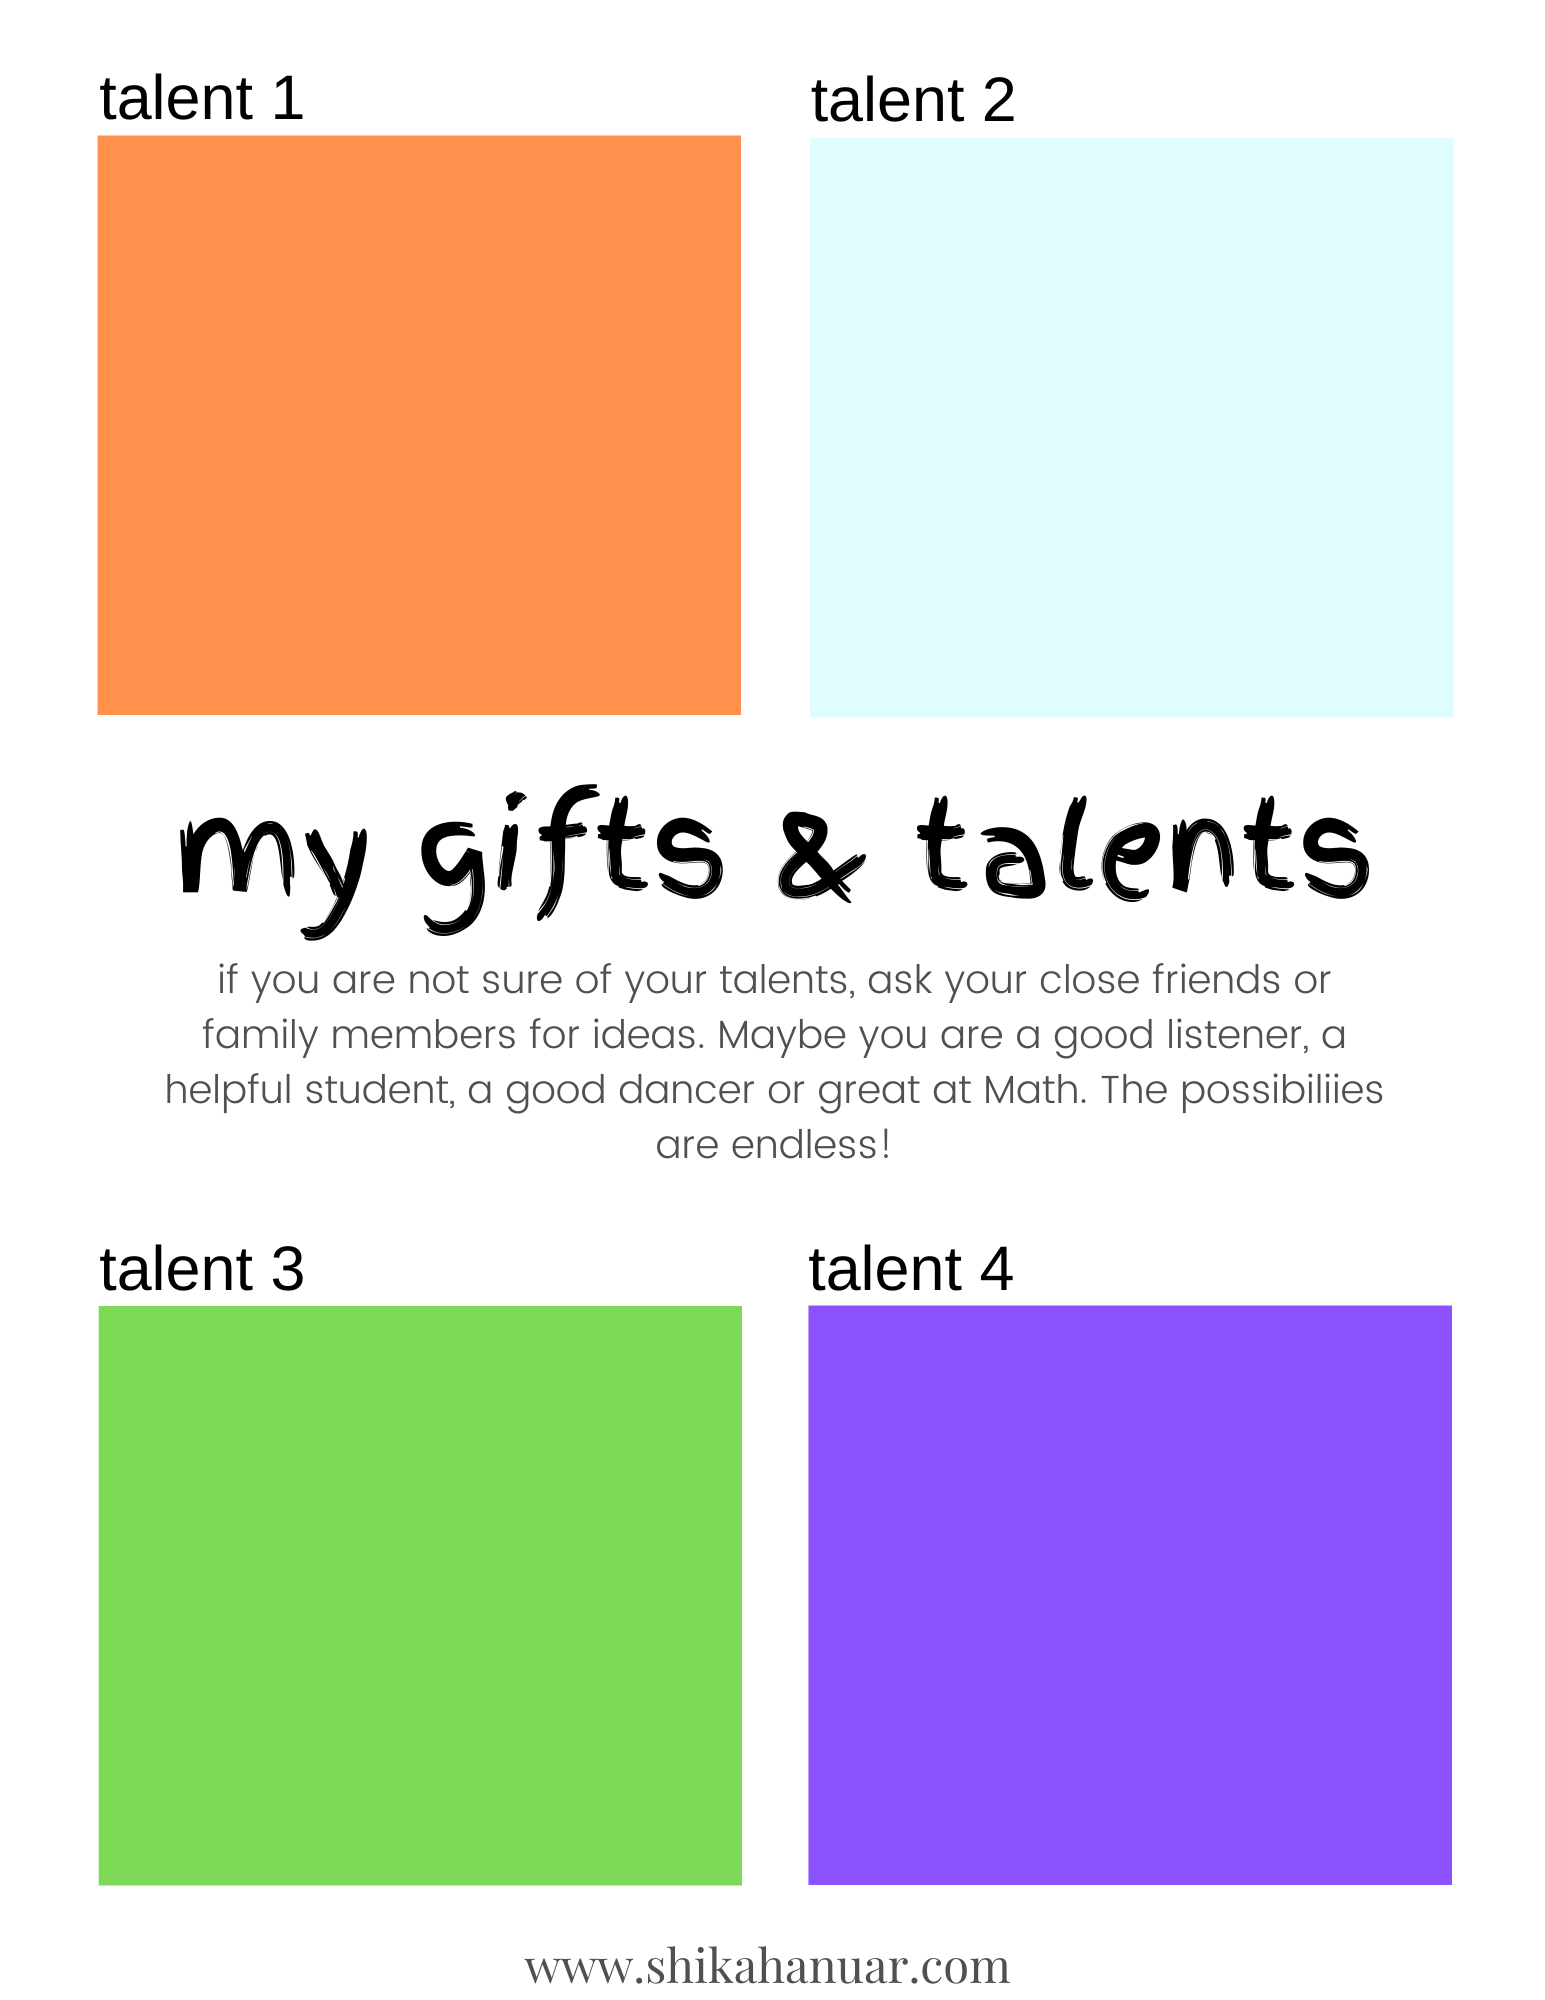 Free Printable Self Esteem Worksheets For Kids To Give Them An Instant Confidence Boost Shikah Anuar Self Esteem Worksheets Self Esteem Activities Therapy Worksheets [ 2000 x 1545 Pixel ]